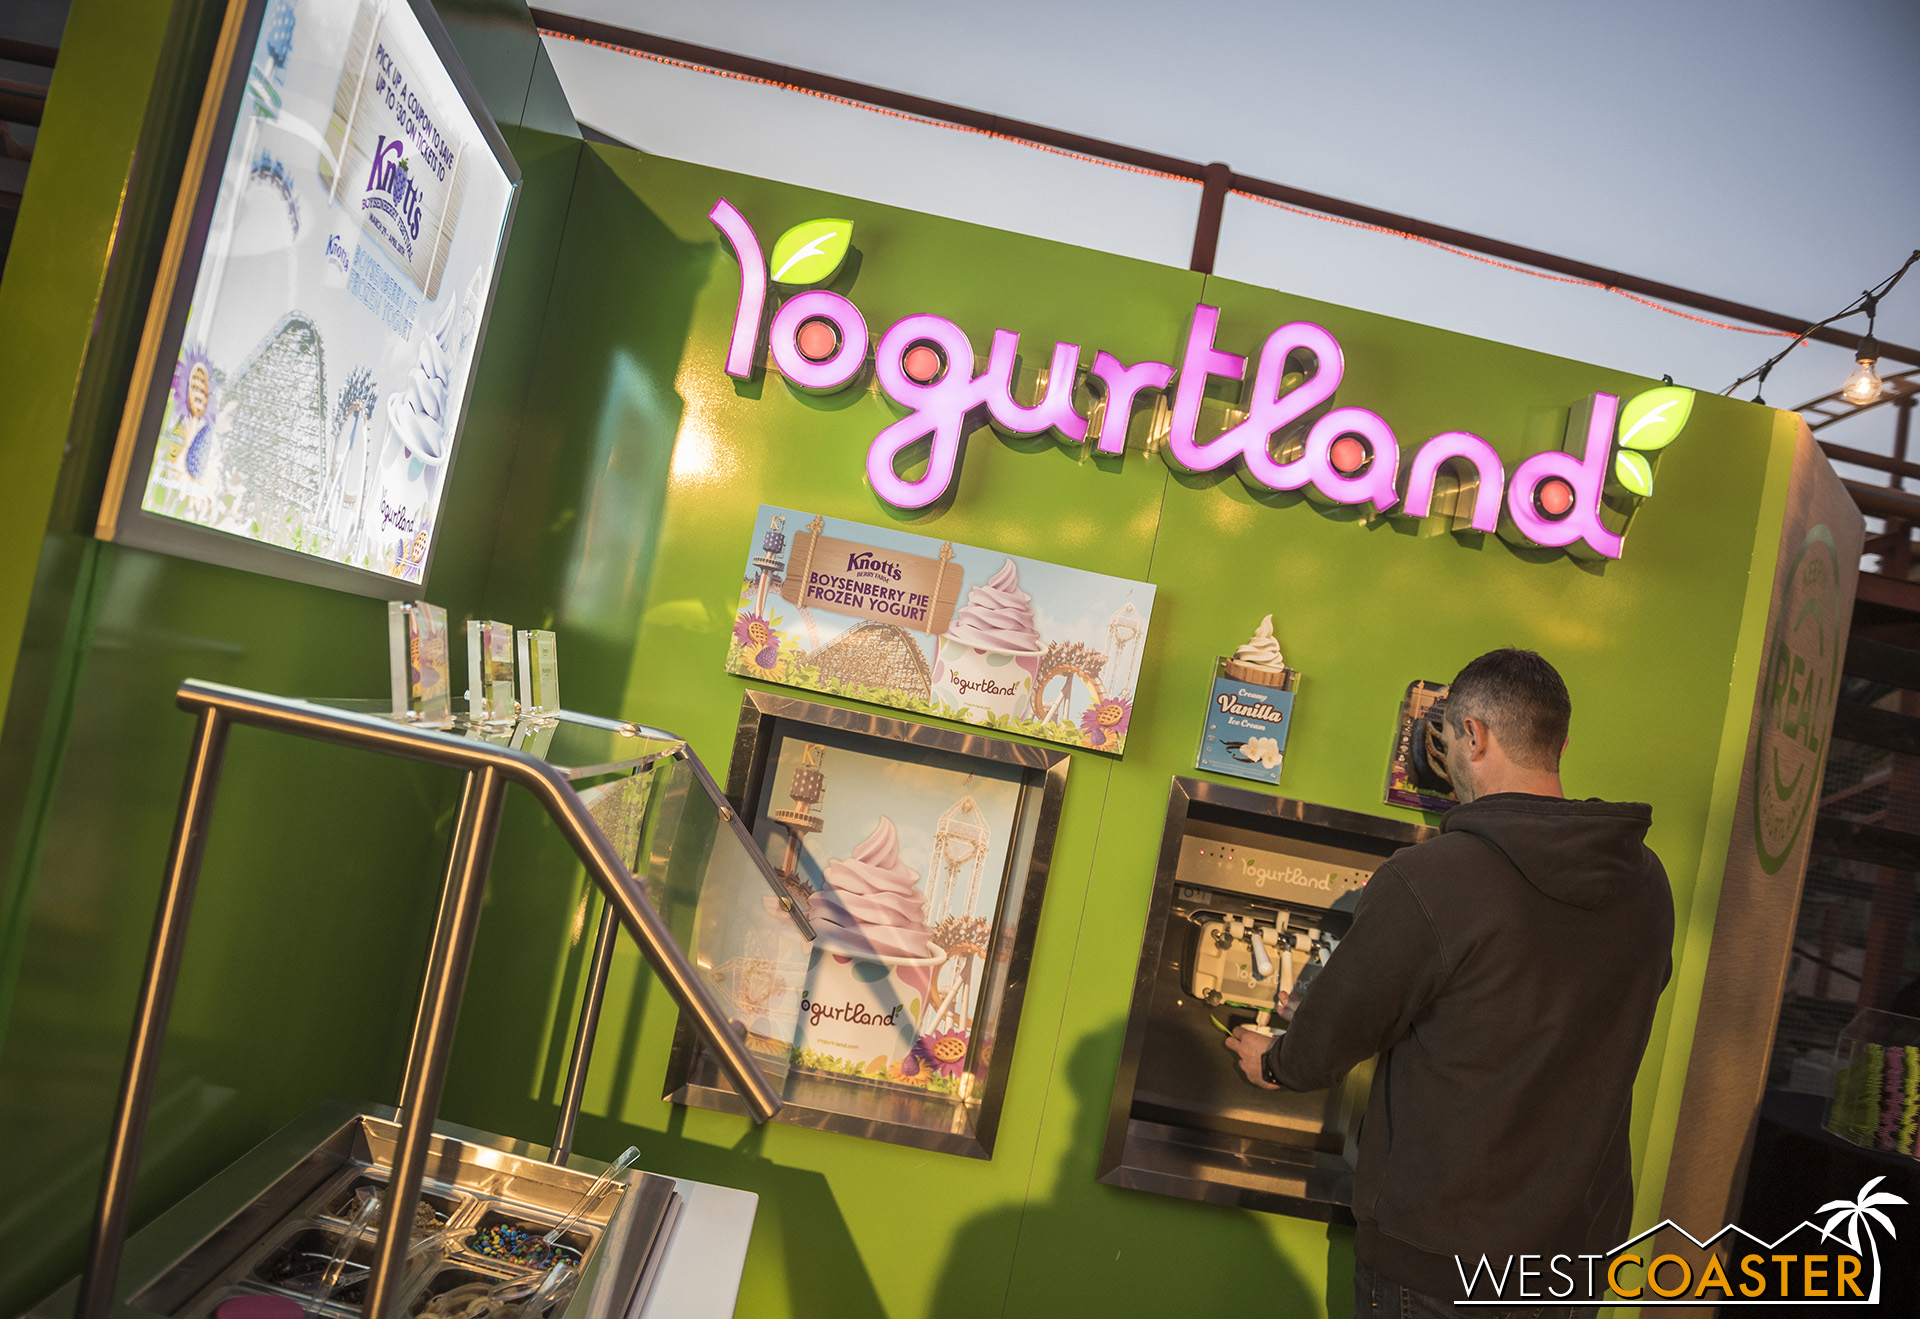 For this year, Yogurtland has partnered with Knott's to offer Boysenberry Frozen Yogurt! I thought it would be available at Knott's Only, but it will be sold at regular Yogurtland locations too!